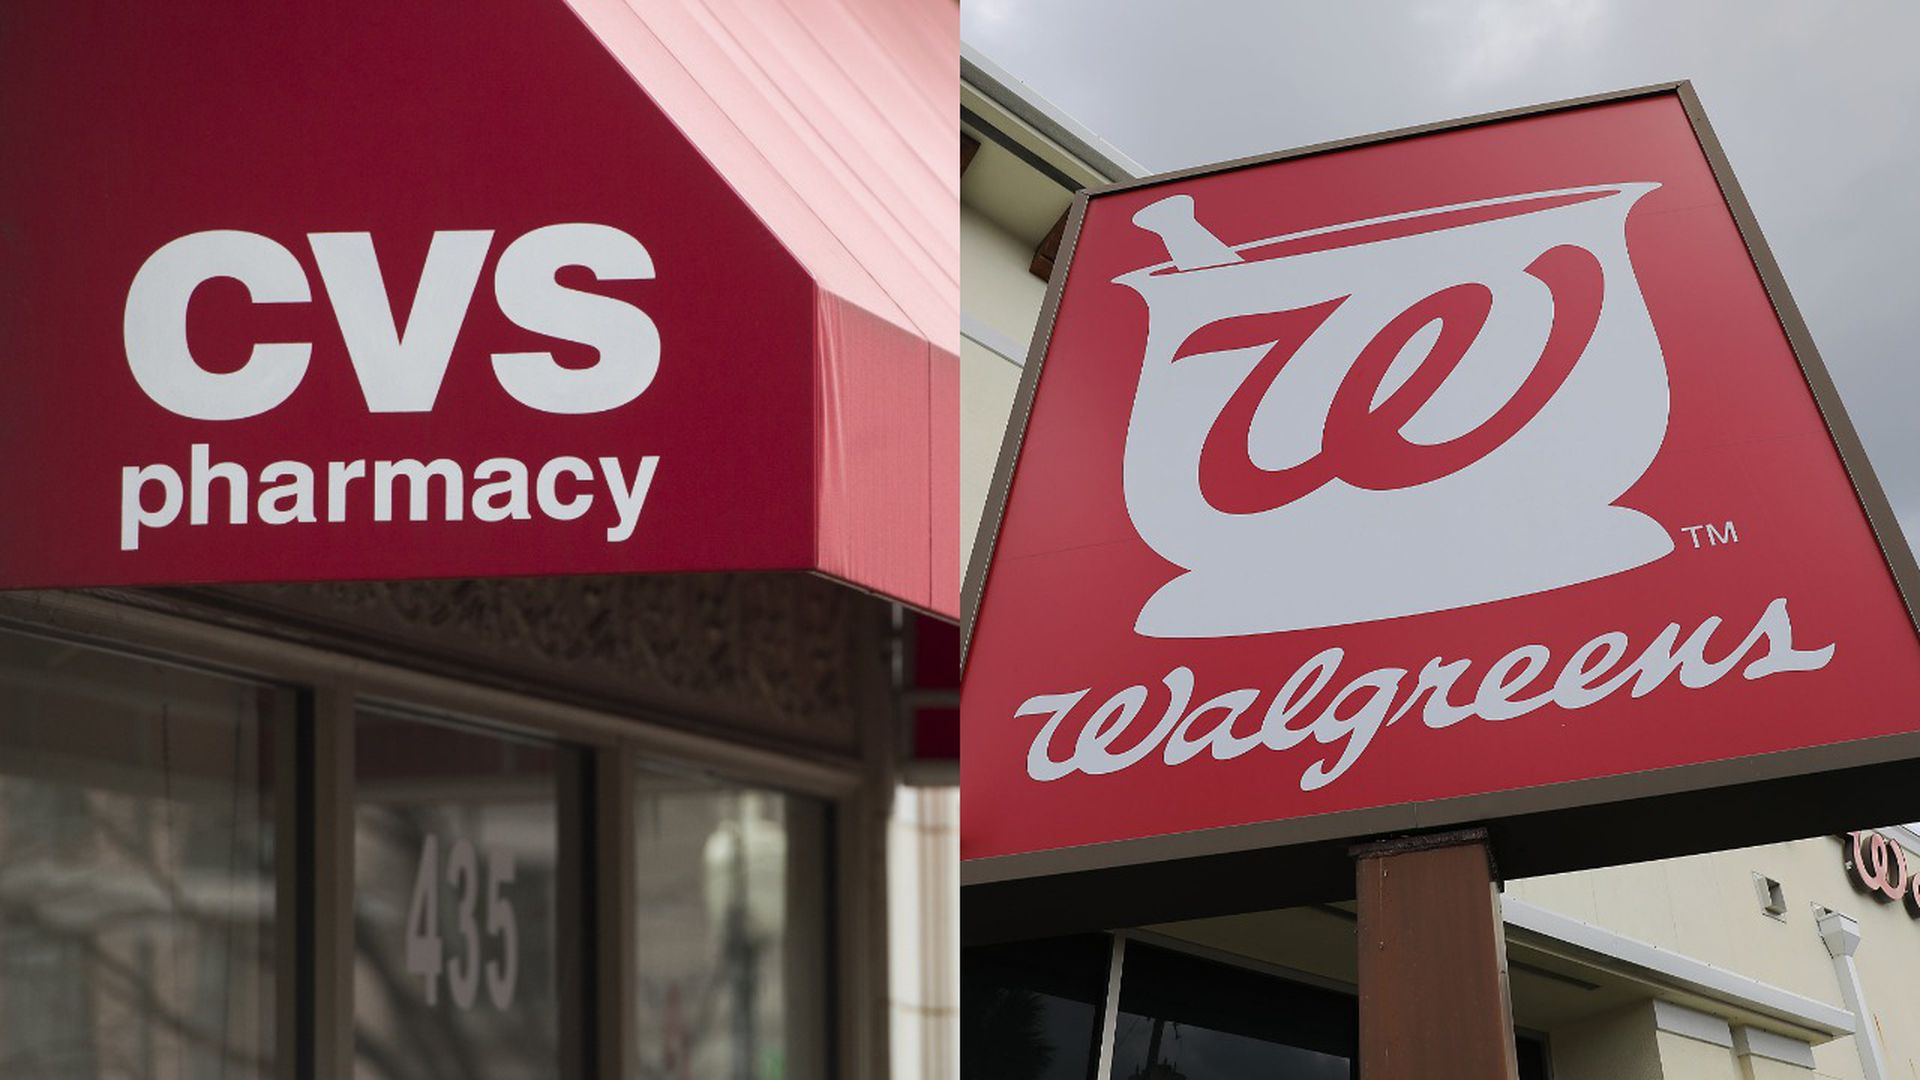 The Walgreens and CVS logos.